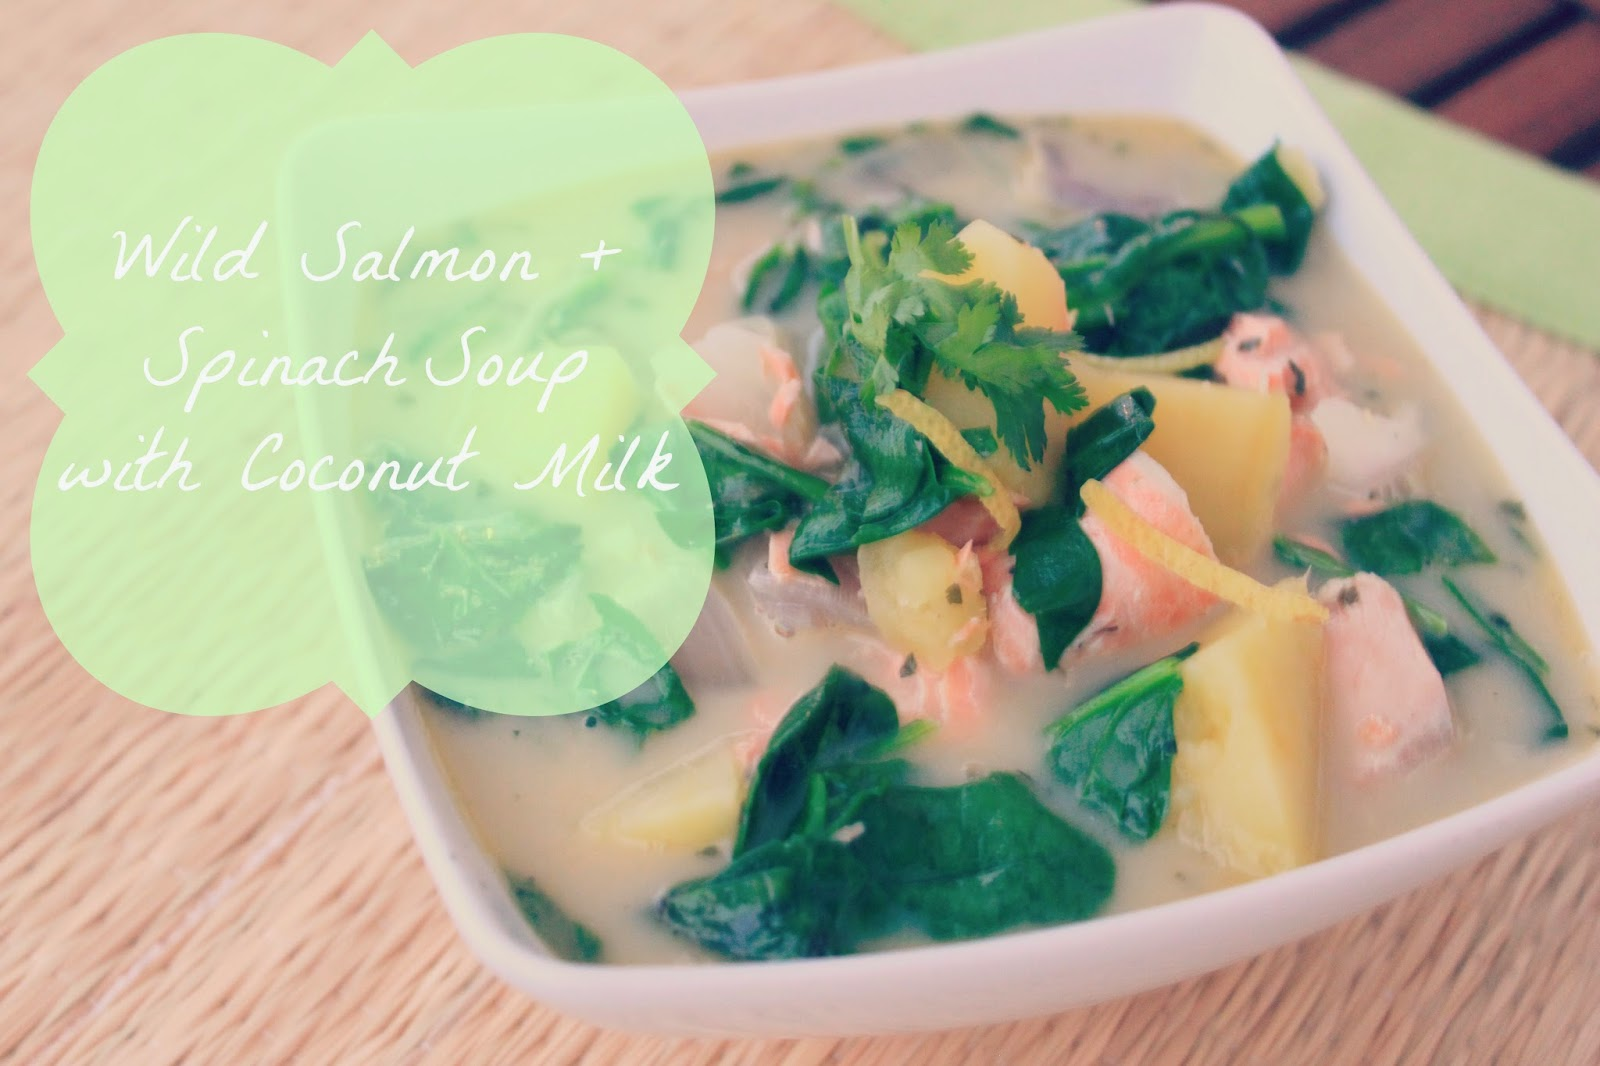 Creamy spinach salmon soup with coconut milk